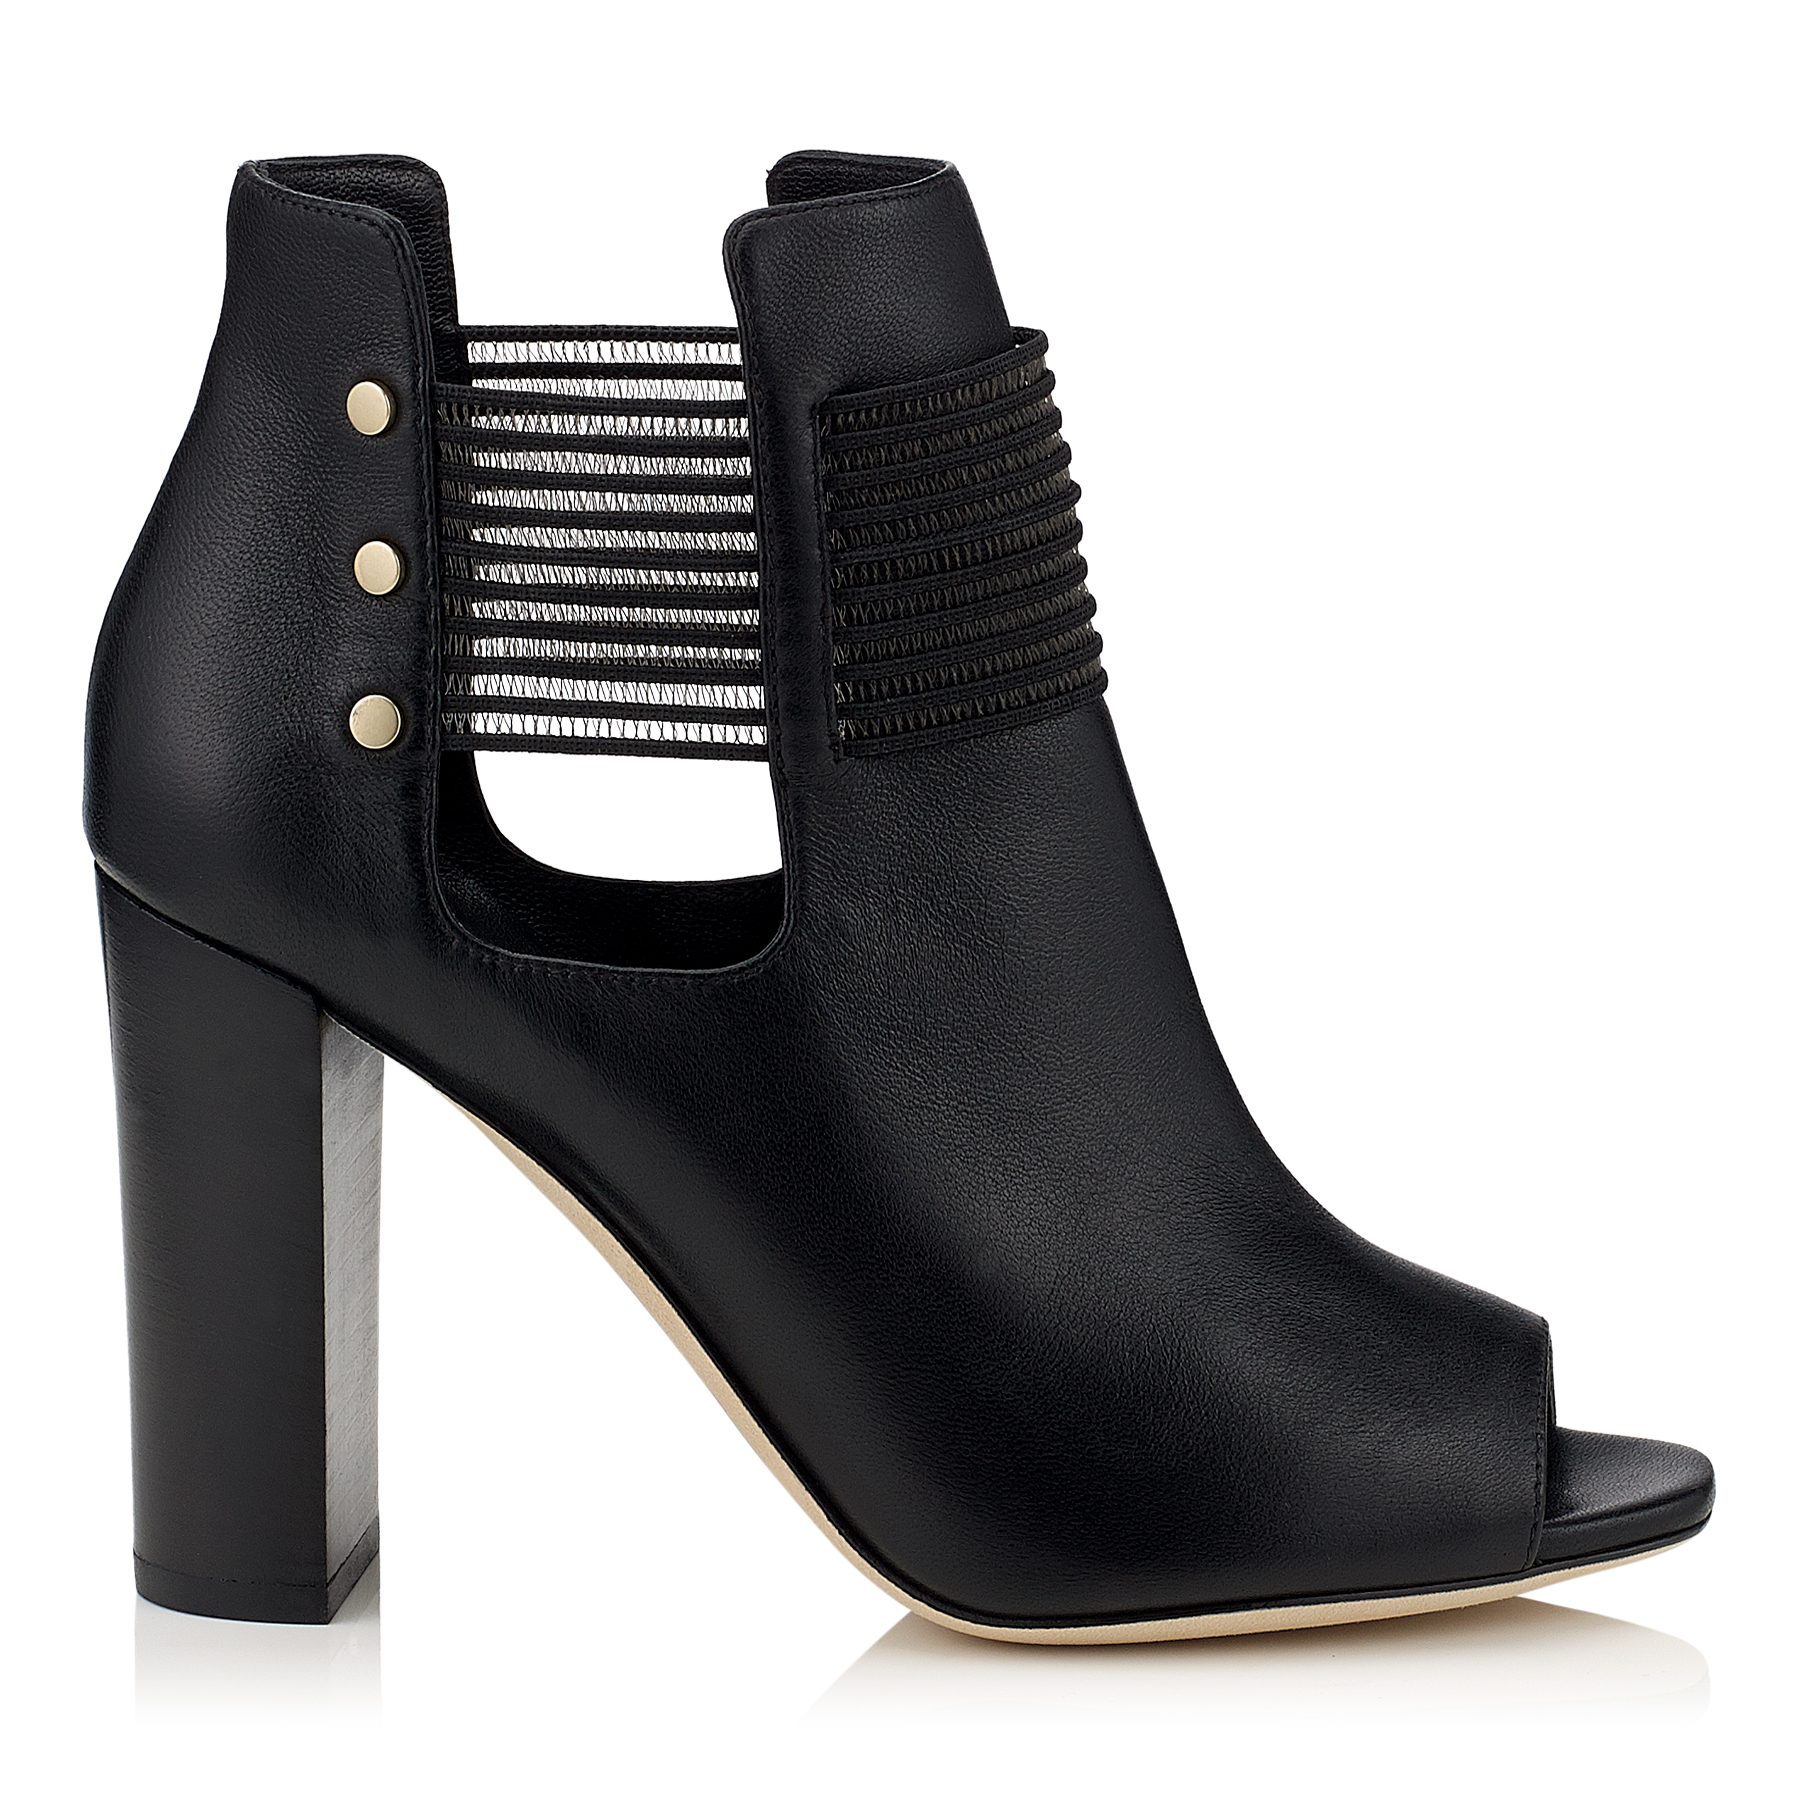 MASE 95 Black Soft Grainy Leather Ankle Booties